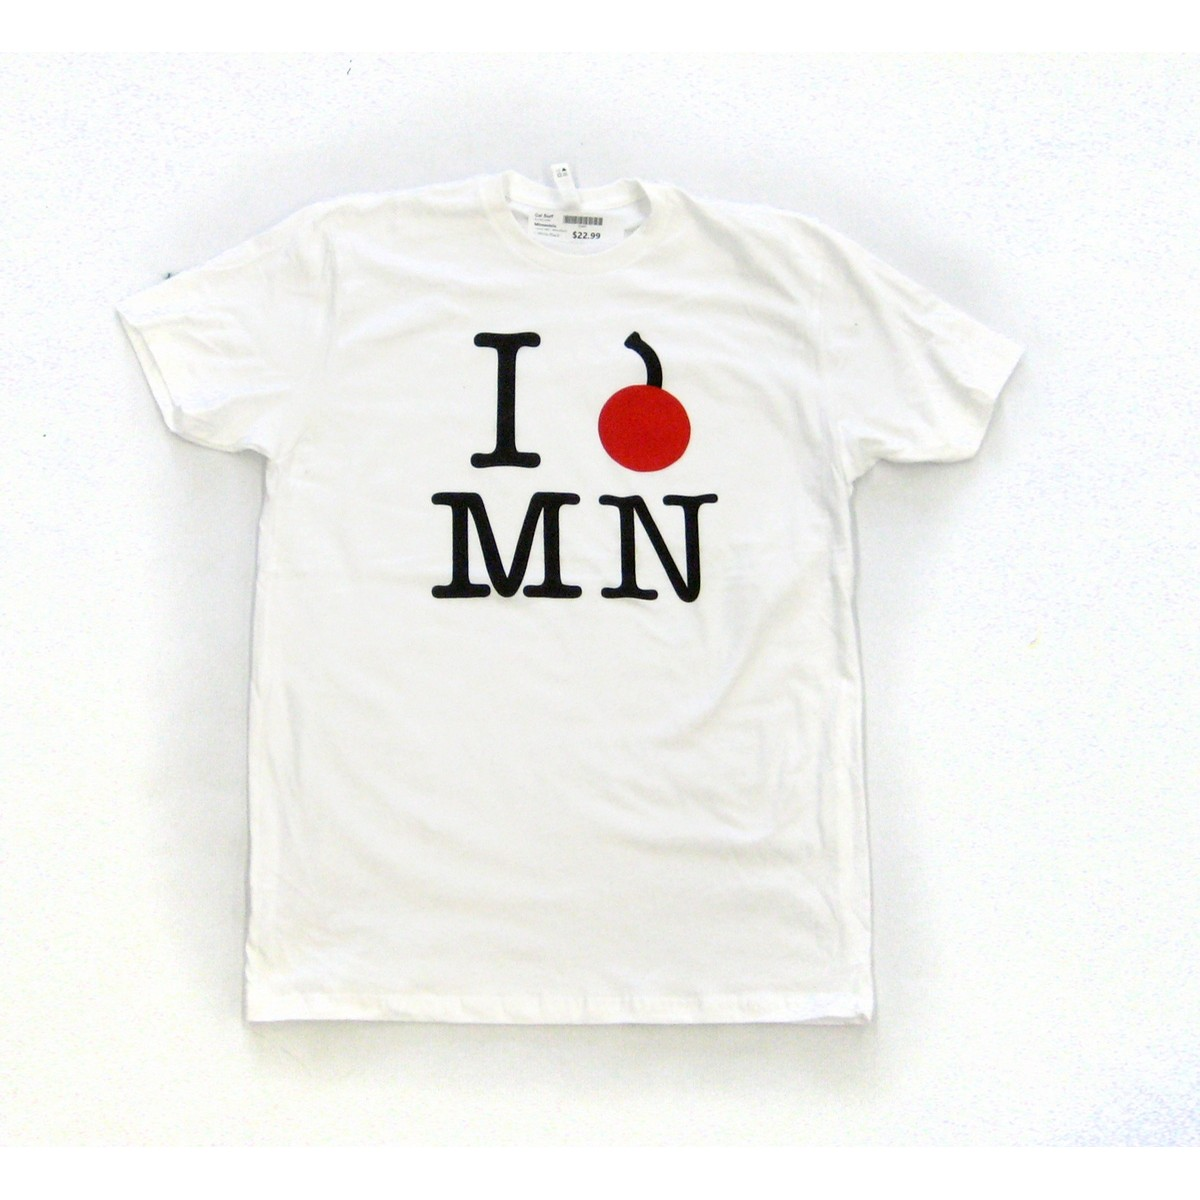 I Spoon MN - White/Black